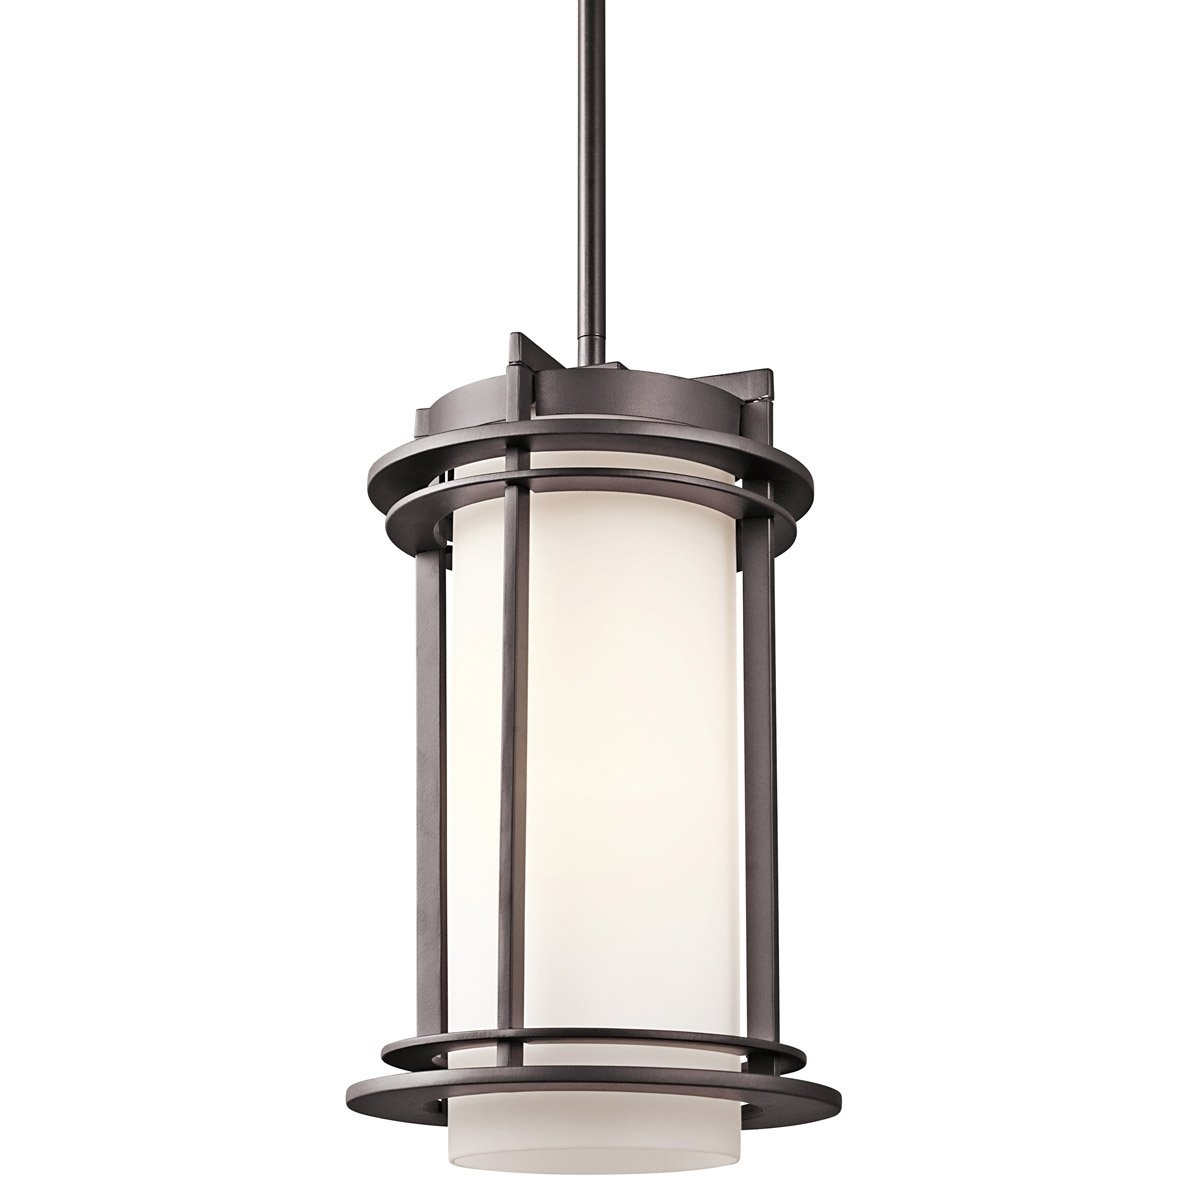 Kichler Lighting 49348Az Pacific Edge 1 Light 8 Inch Architectural Pertaining To Favorite Outdoor Pendant Kichler Lighting (View 4 of 20)